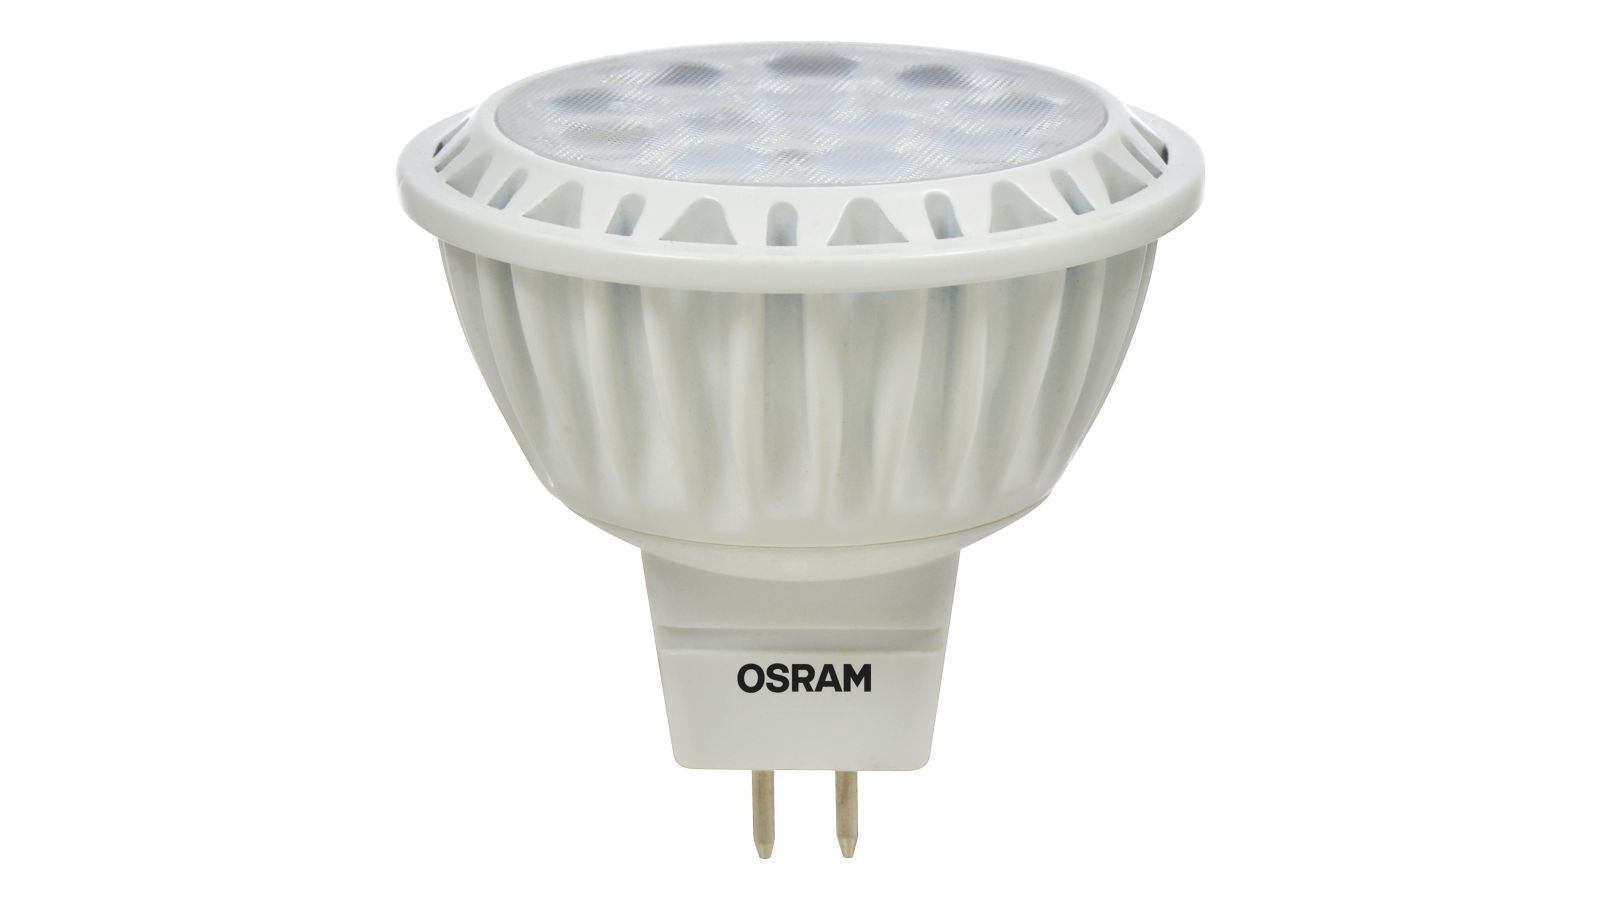 SYLVANIA ULTRA LED MR16 Lamps